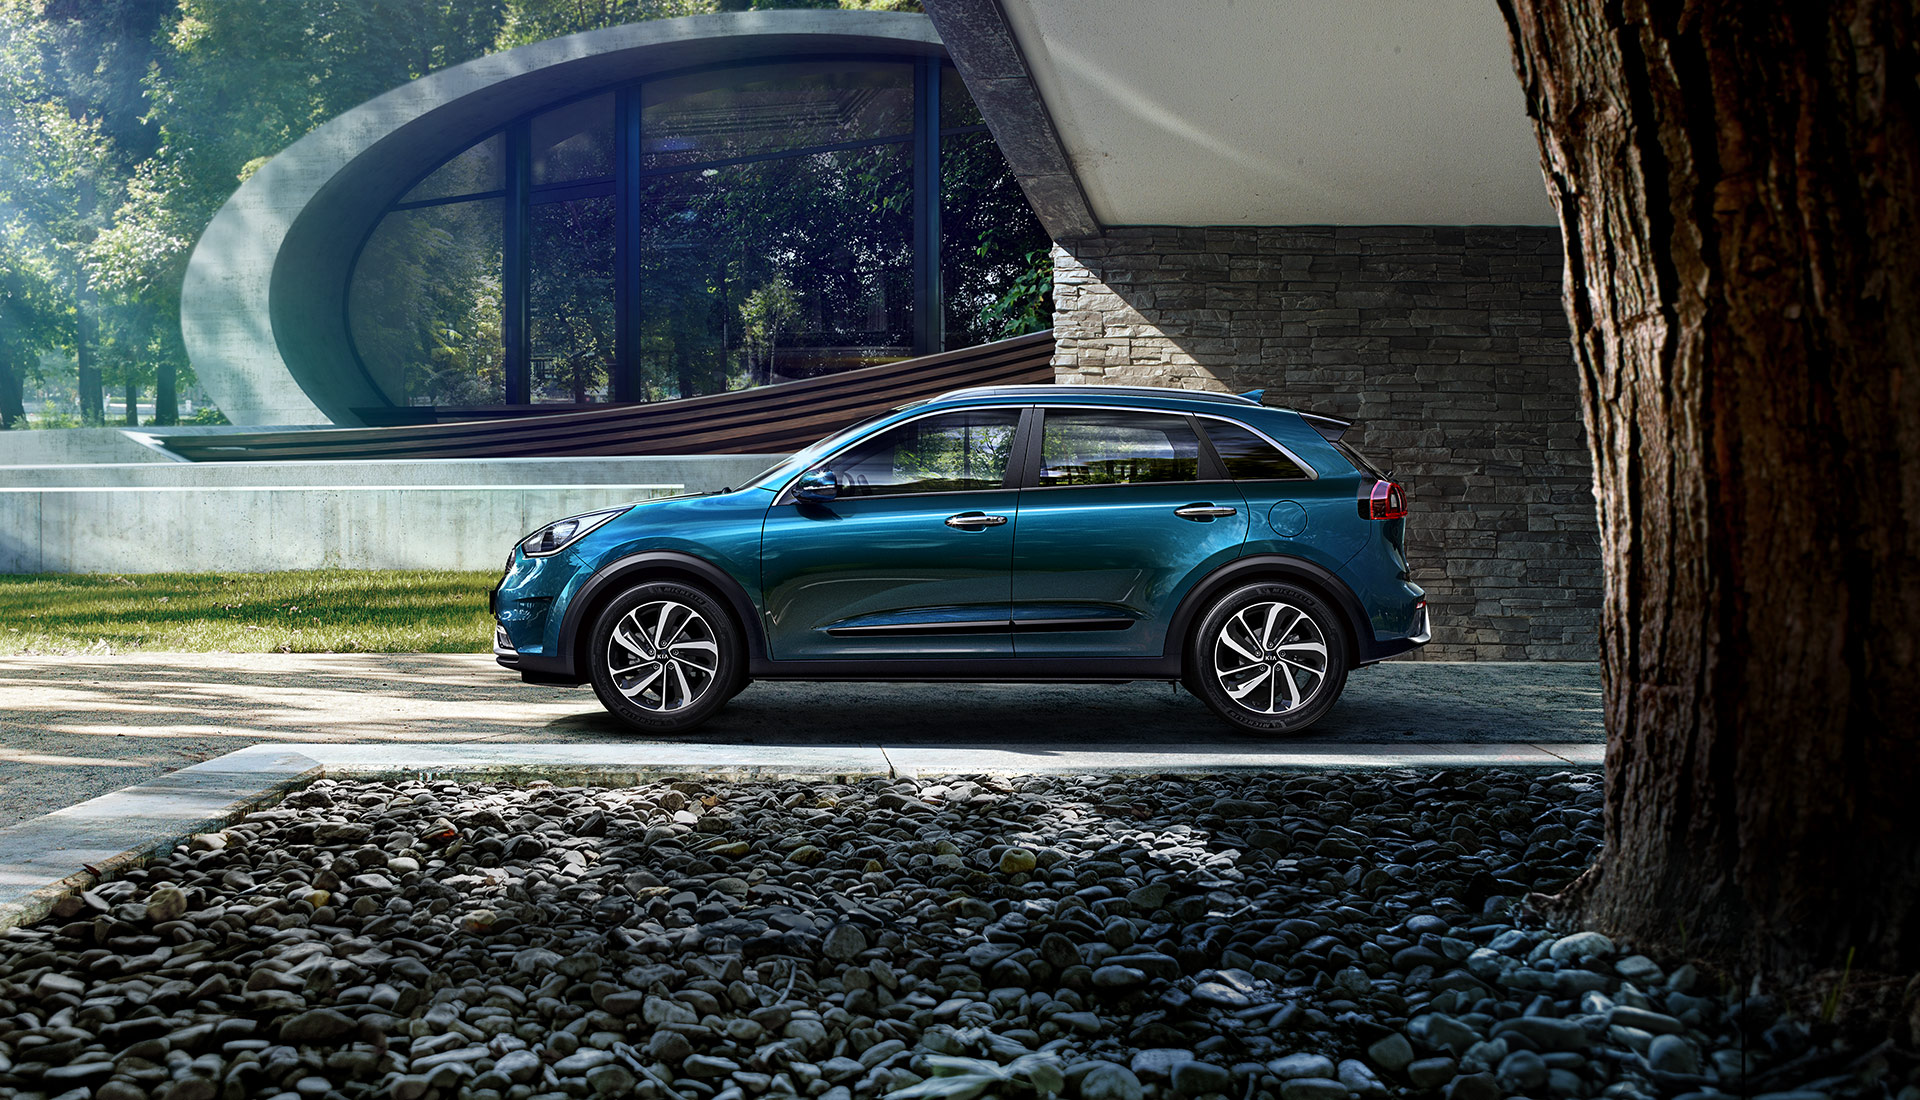 The All-new Niro parked outside of a contemporary house